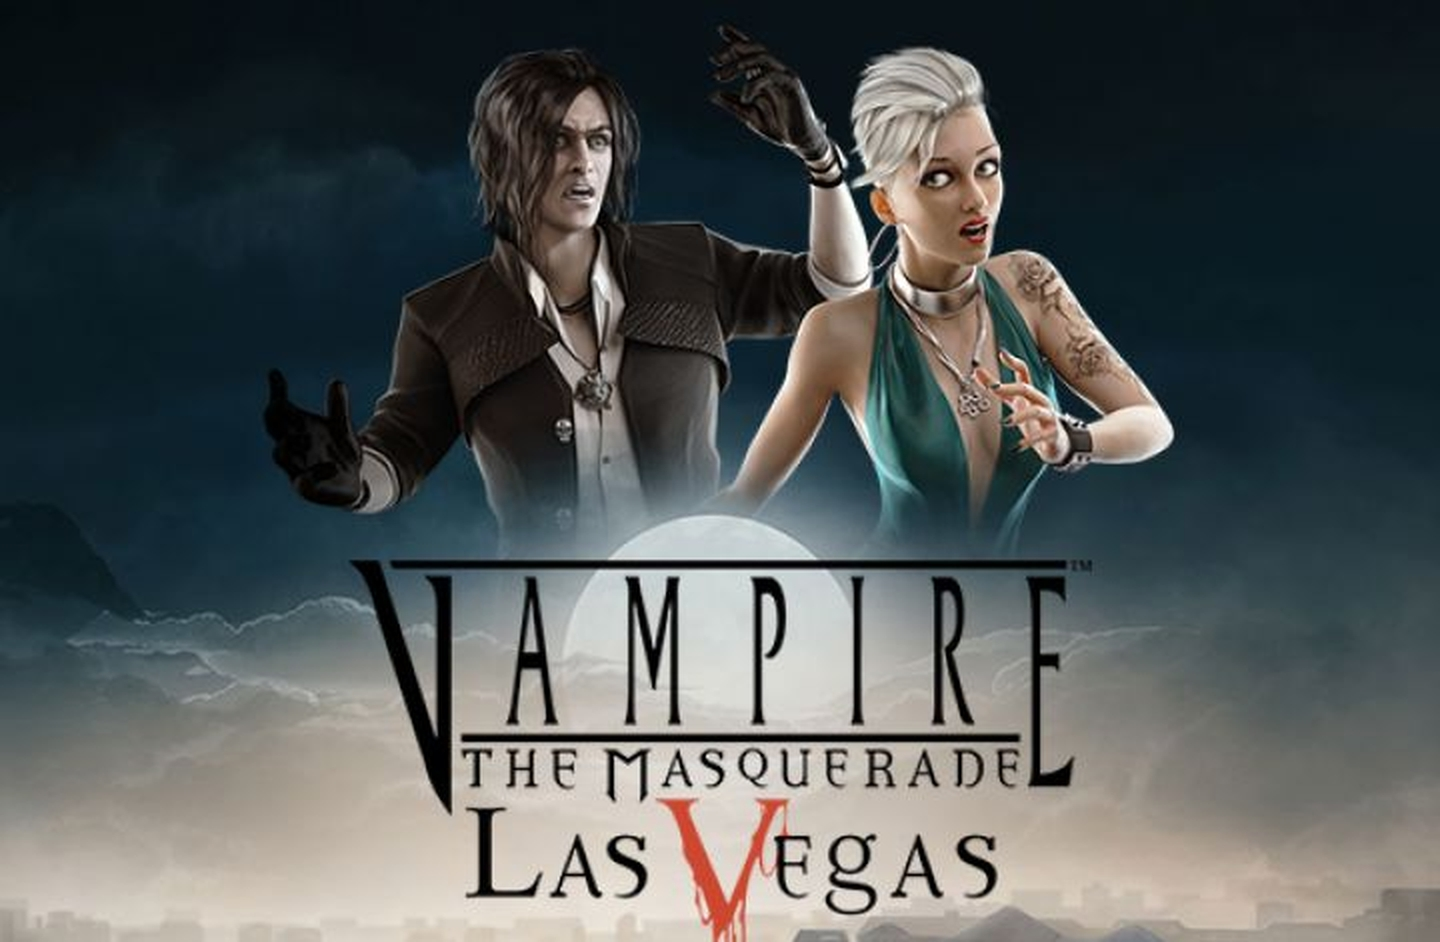 The Vampire: The Masquerade – Las Vegas Online Slot Demo Game by Foxium